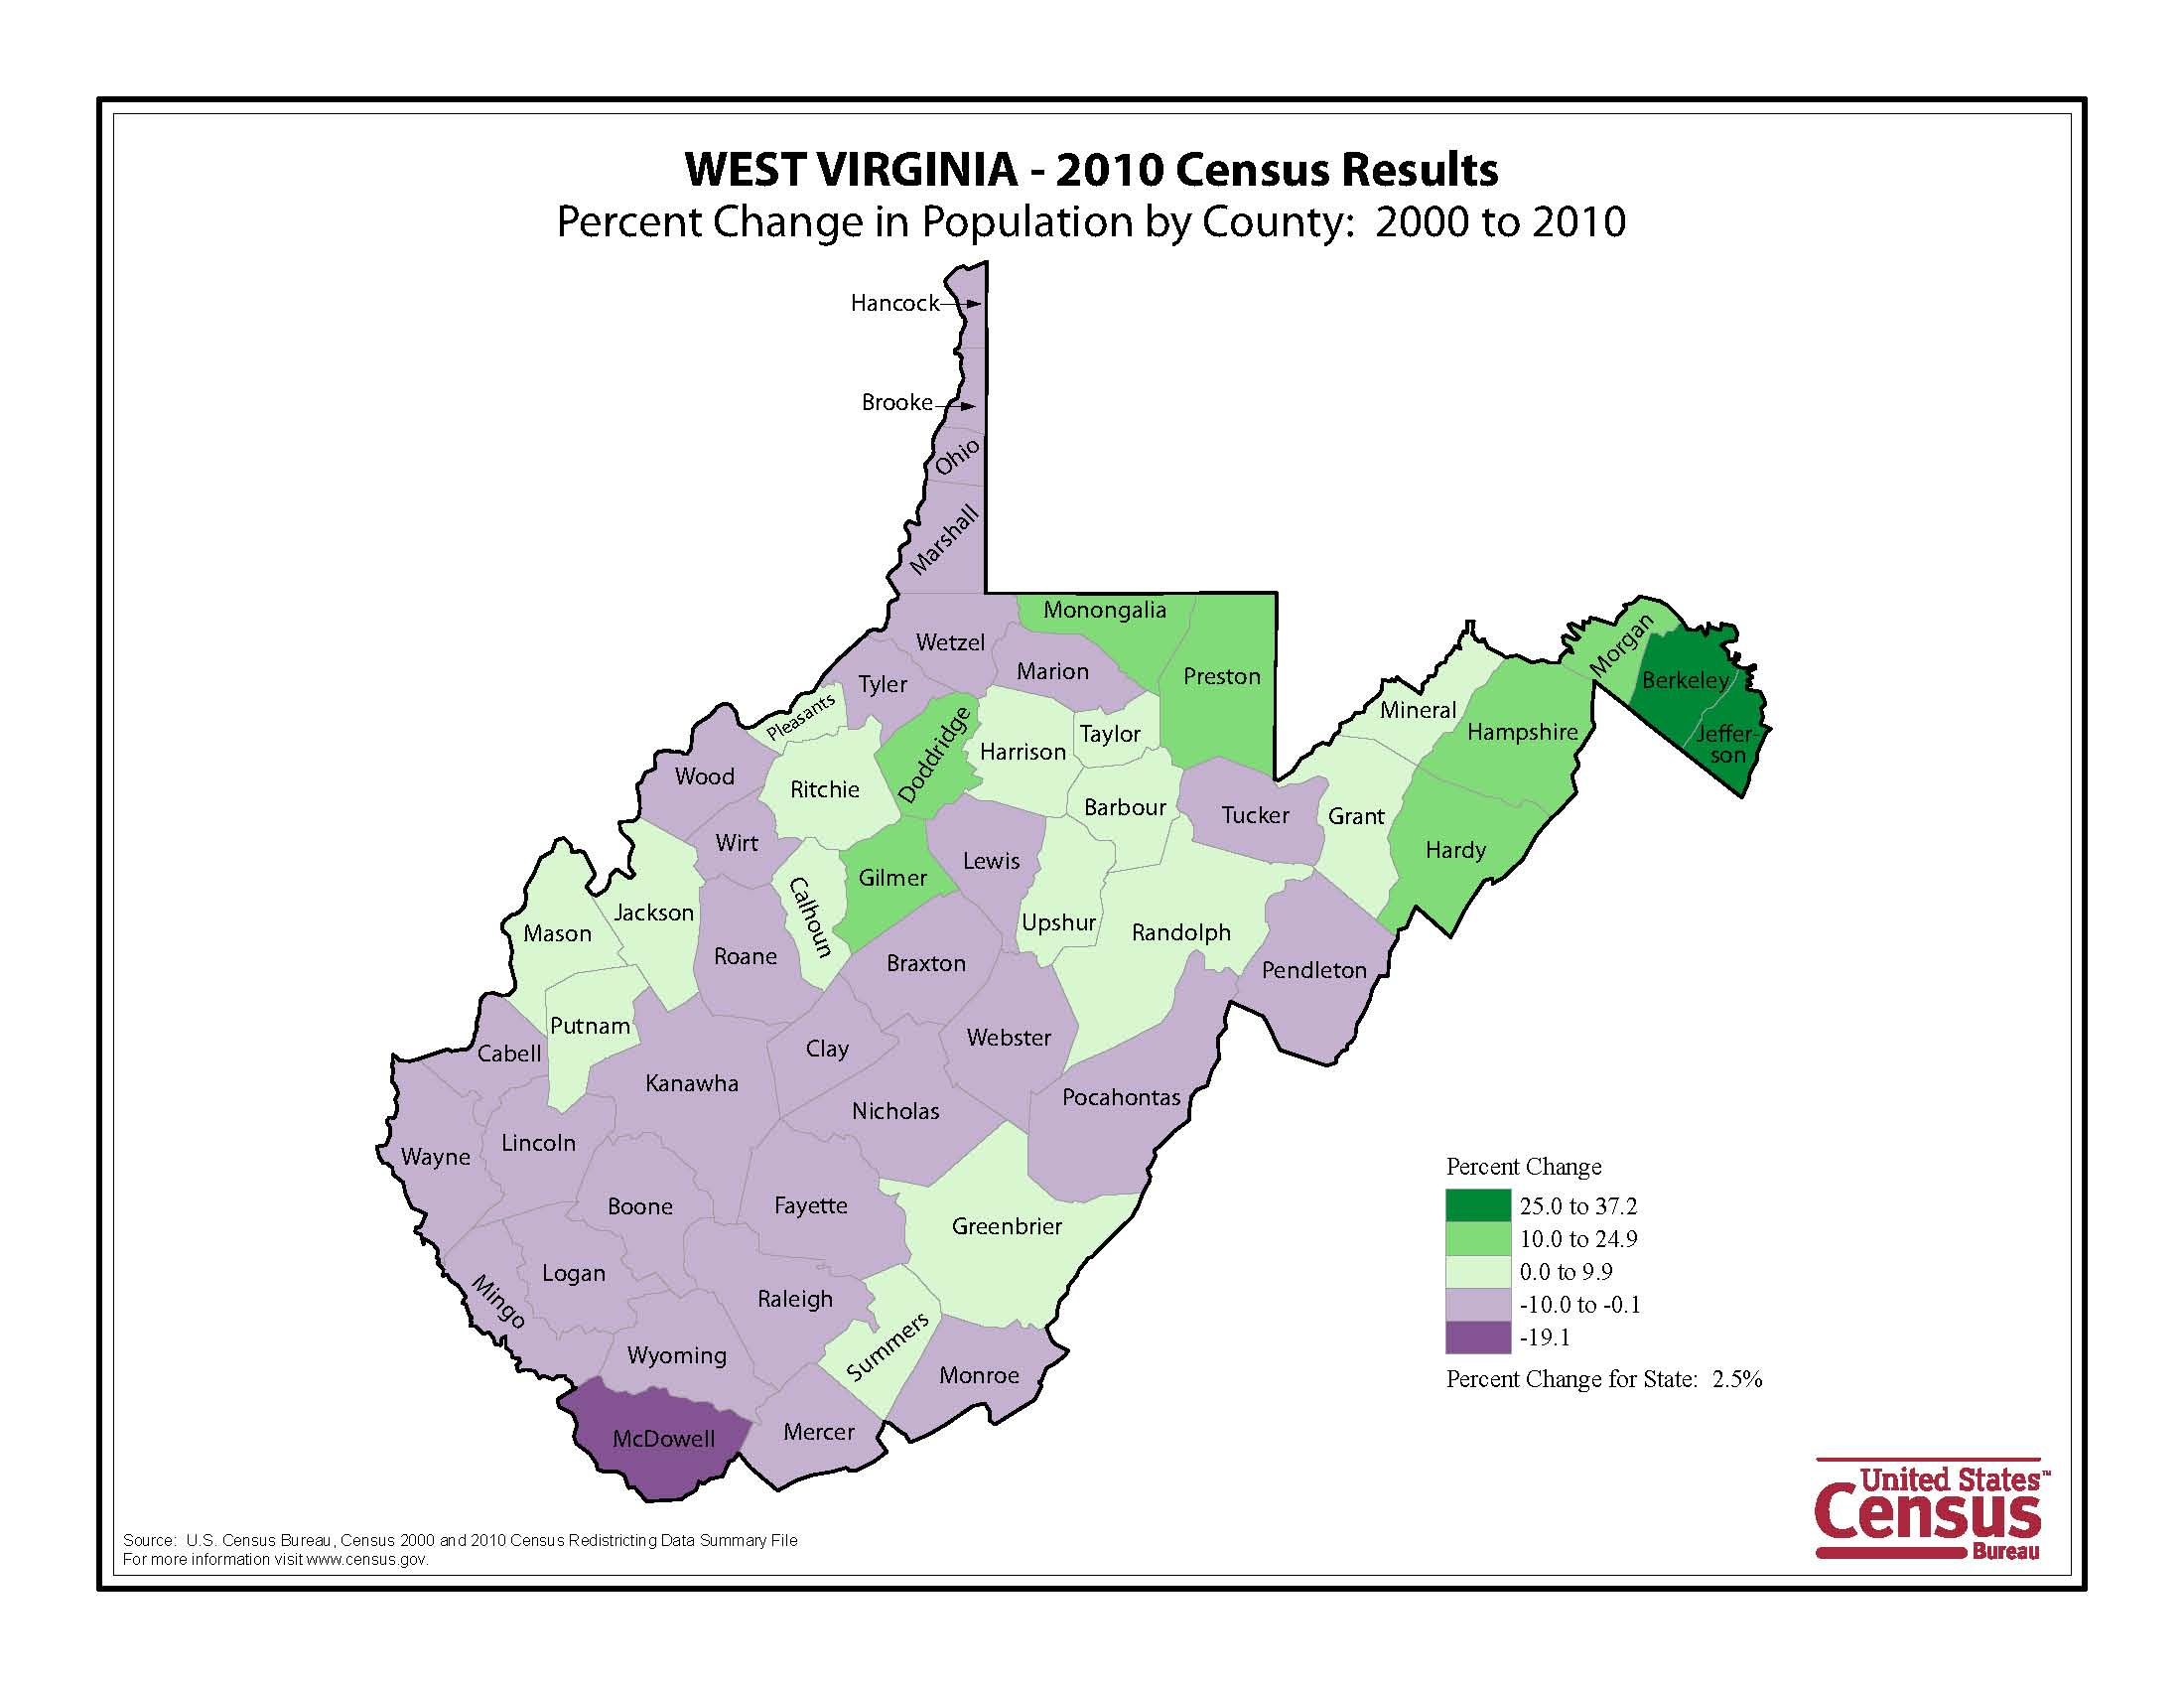 West Virginia - 2010 Census Results Map